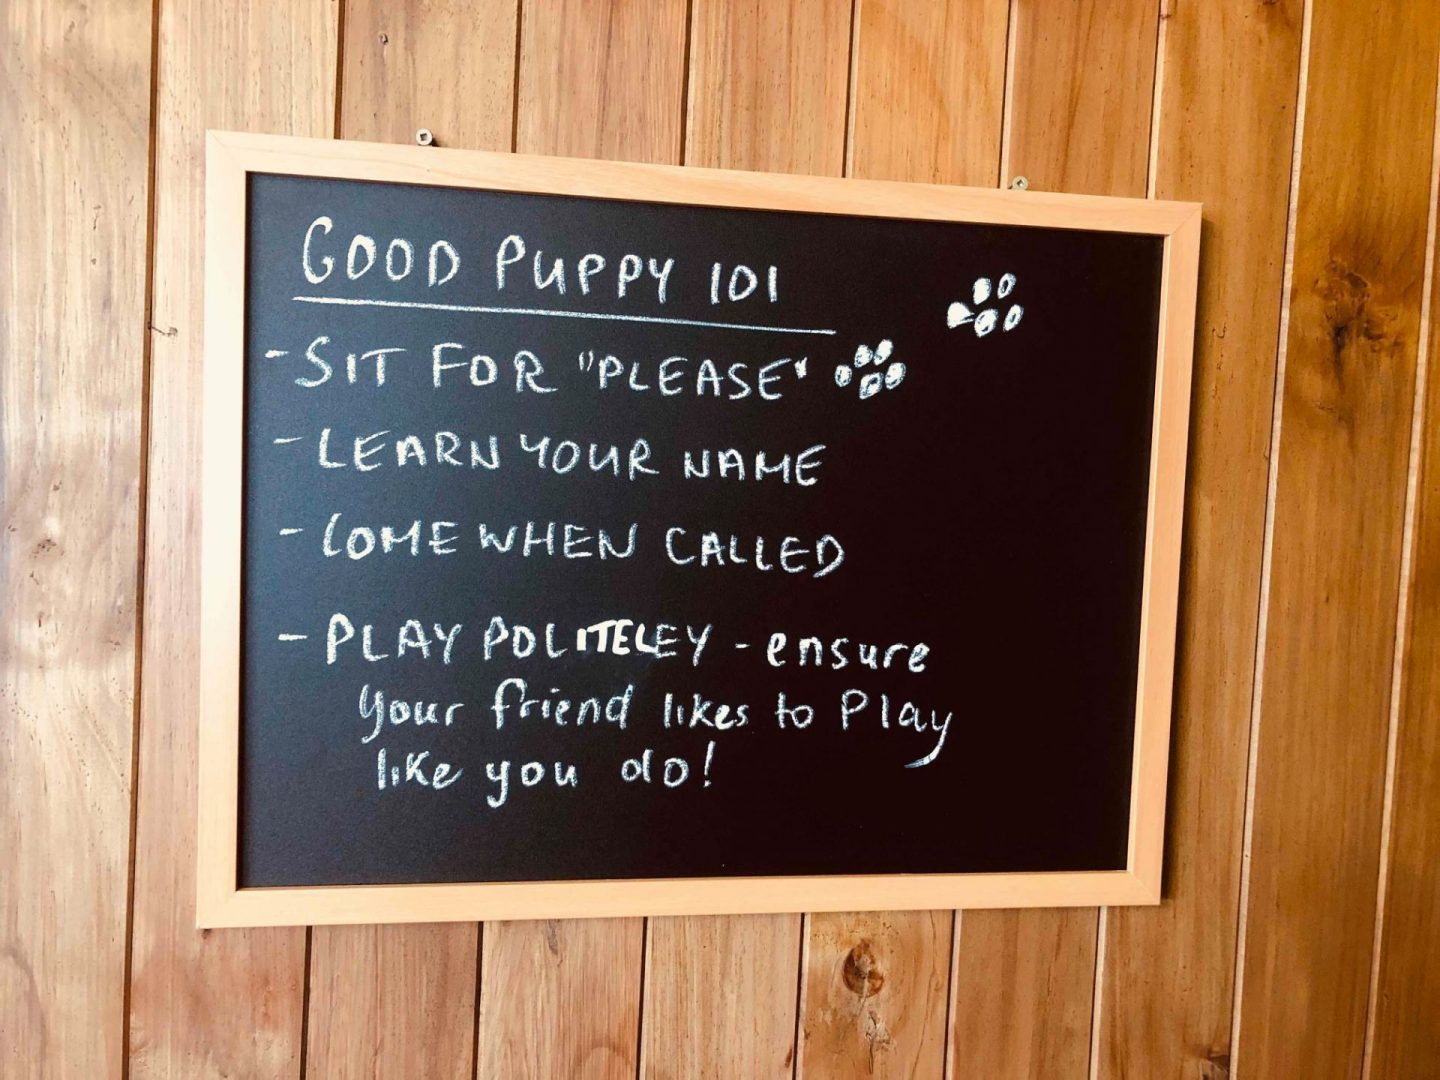 sign at puppy daycare